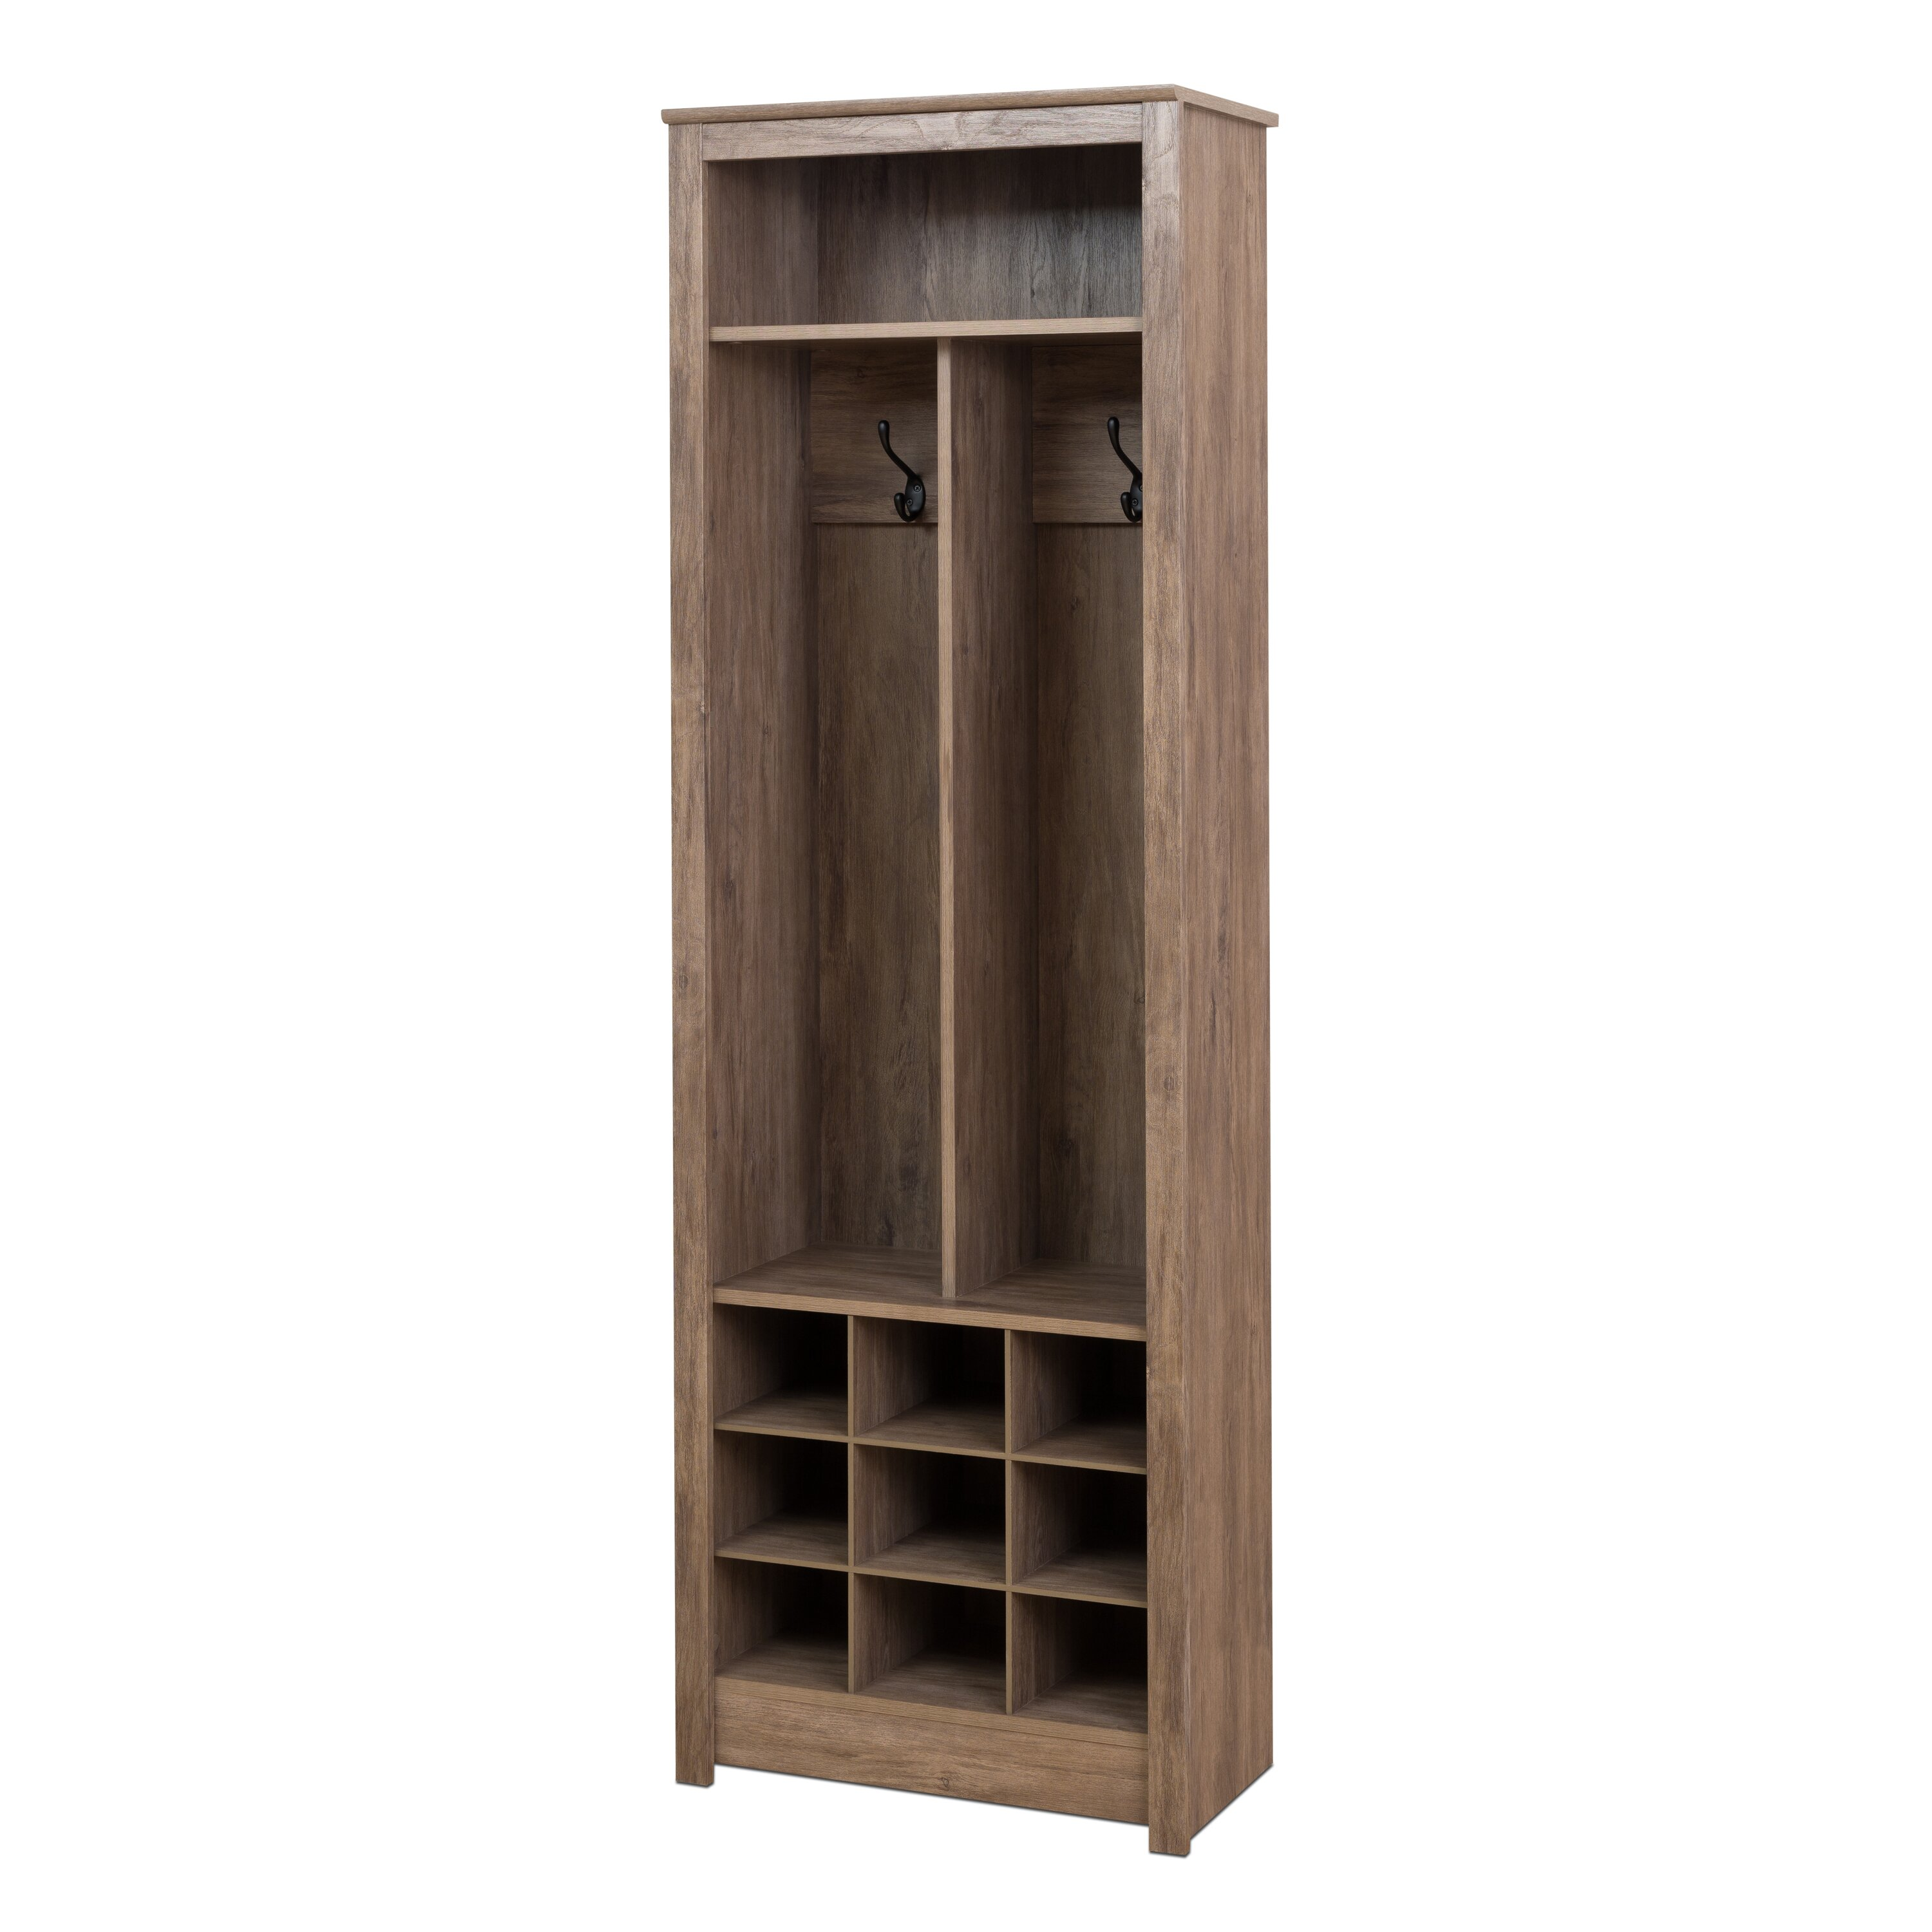 Camila Space Saving Entryway Organizer with Shoe Storage in Drifted Gray